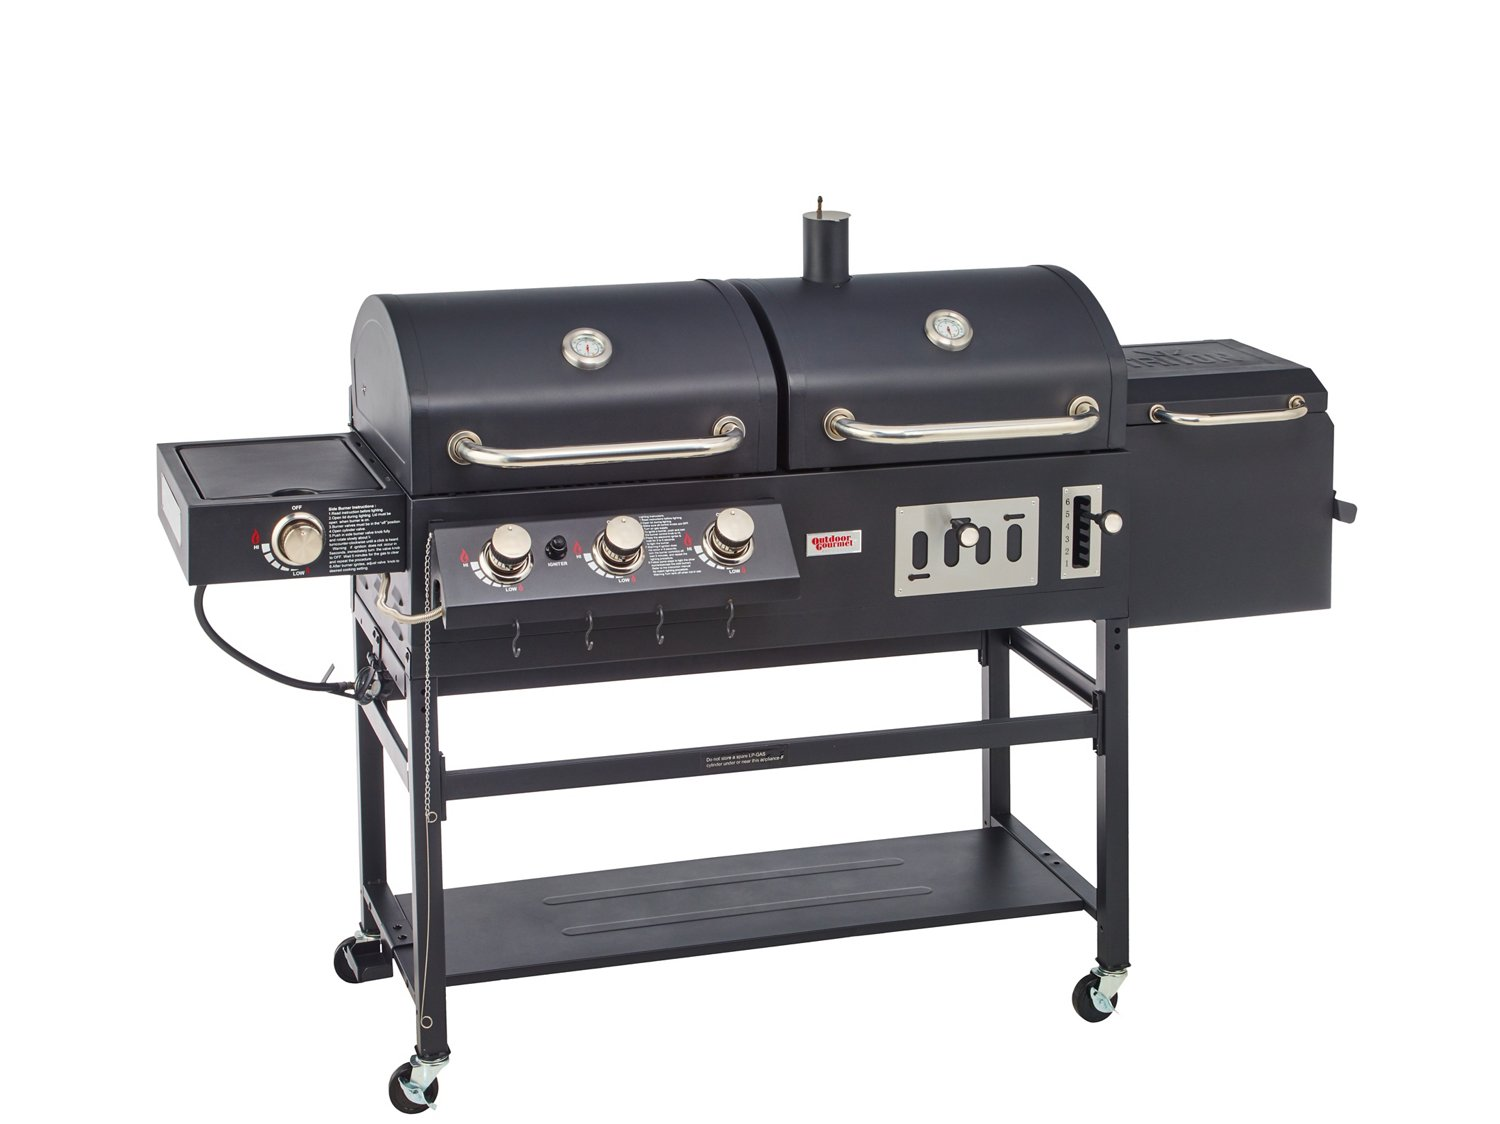 Outdoor Gourmet Triton Clic Gas Charcoal Grill And Smoker Box Academy